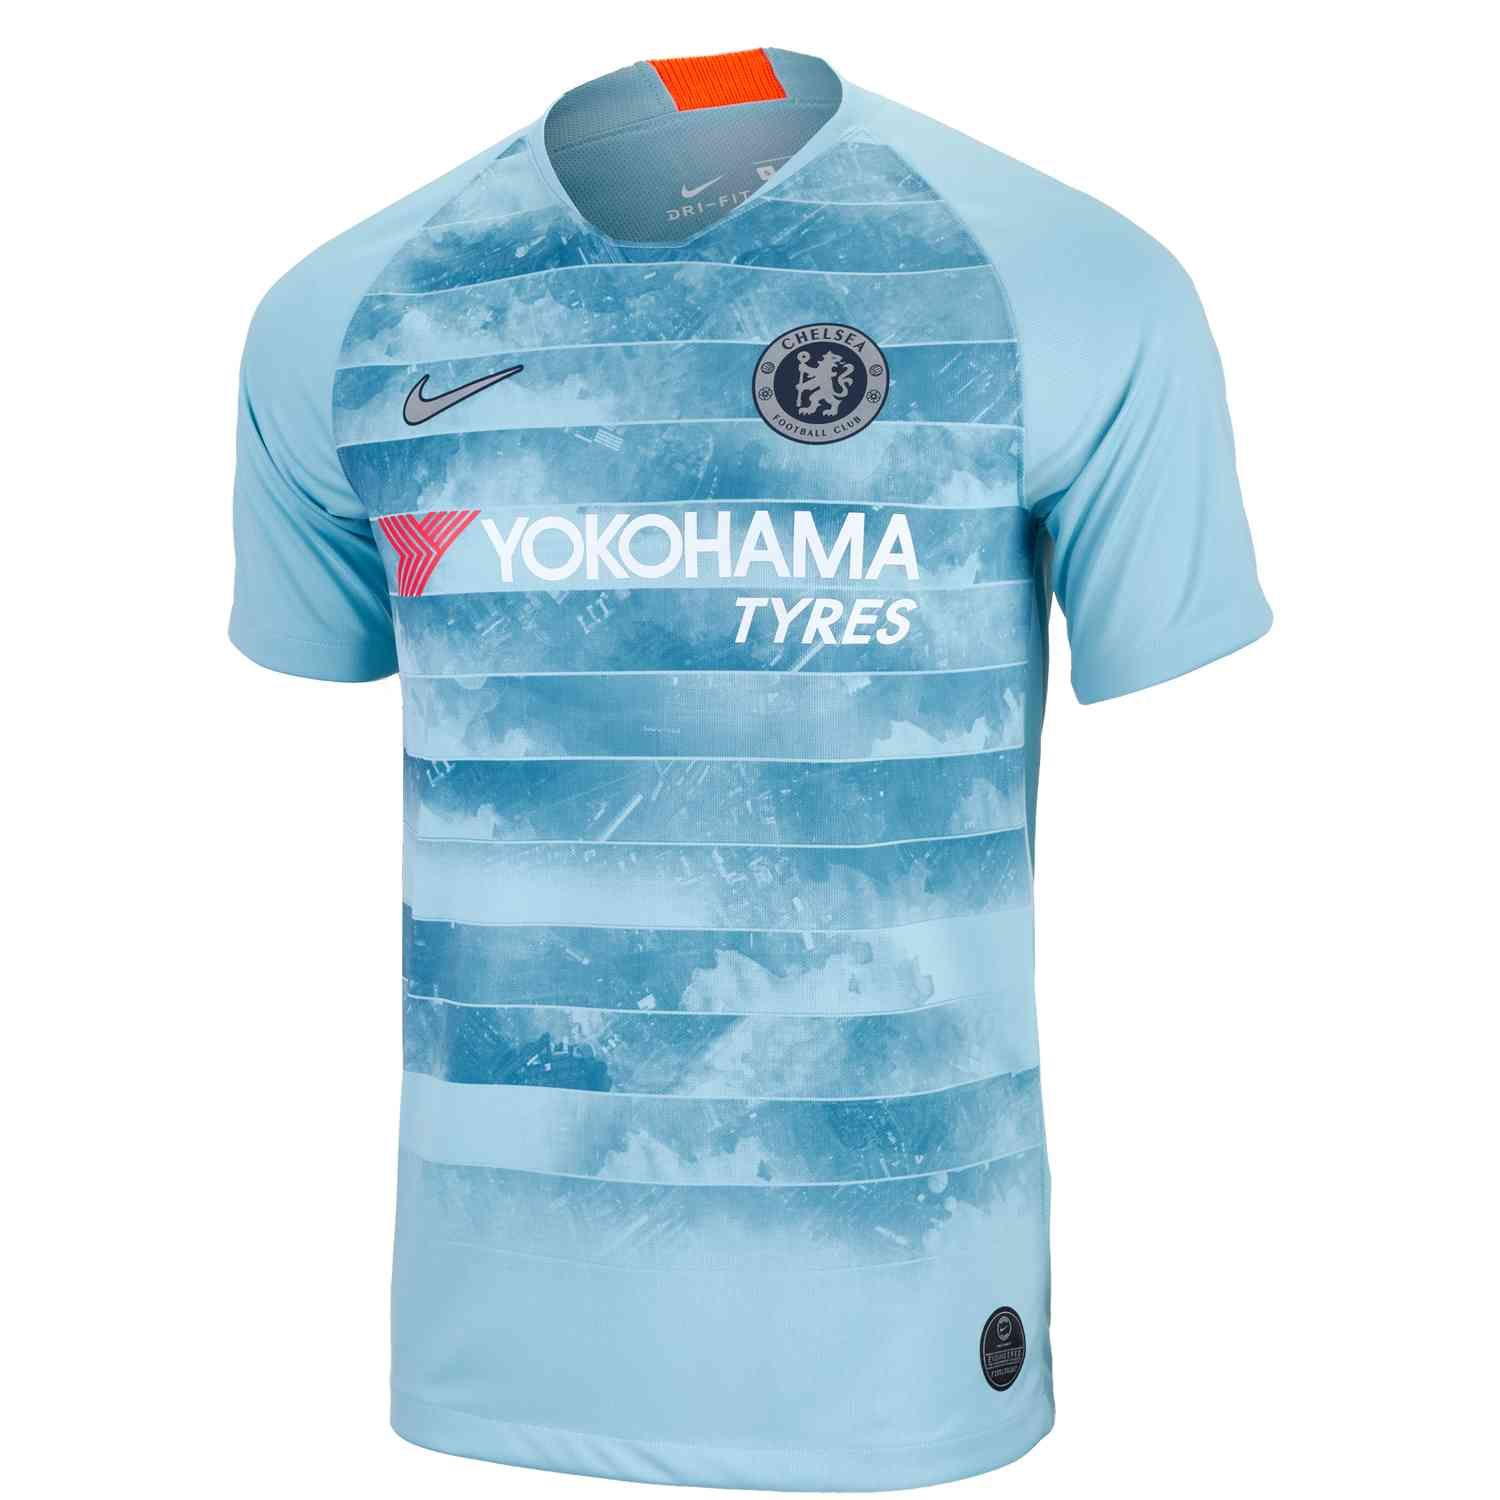 c4504b461f 2018 19 Nike Chelsea FC 3rd Jersey. Available at SoccerPro.